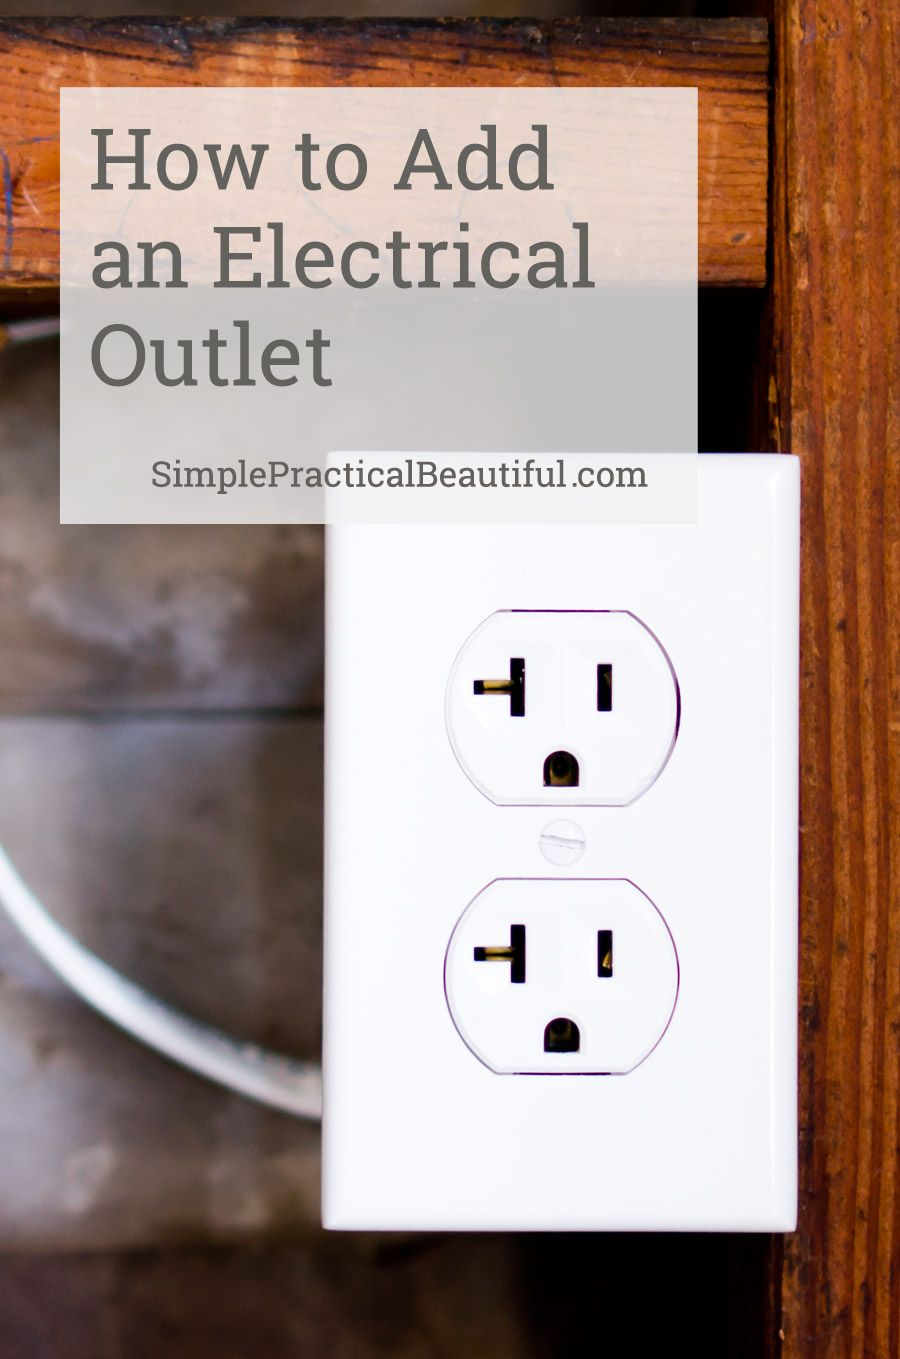 Receptacl Outlets Electric Wire Easy Electric Building Projects